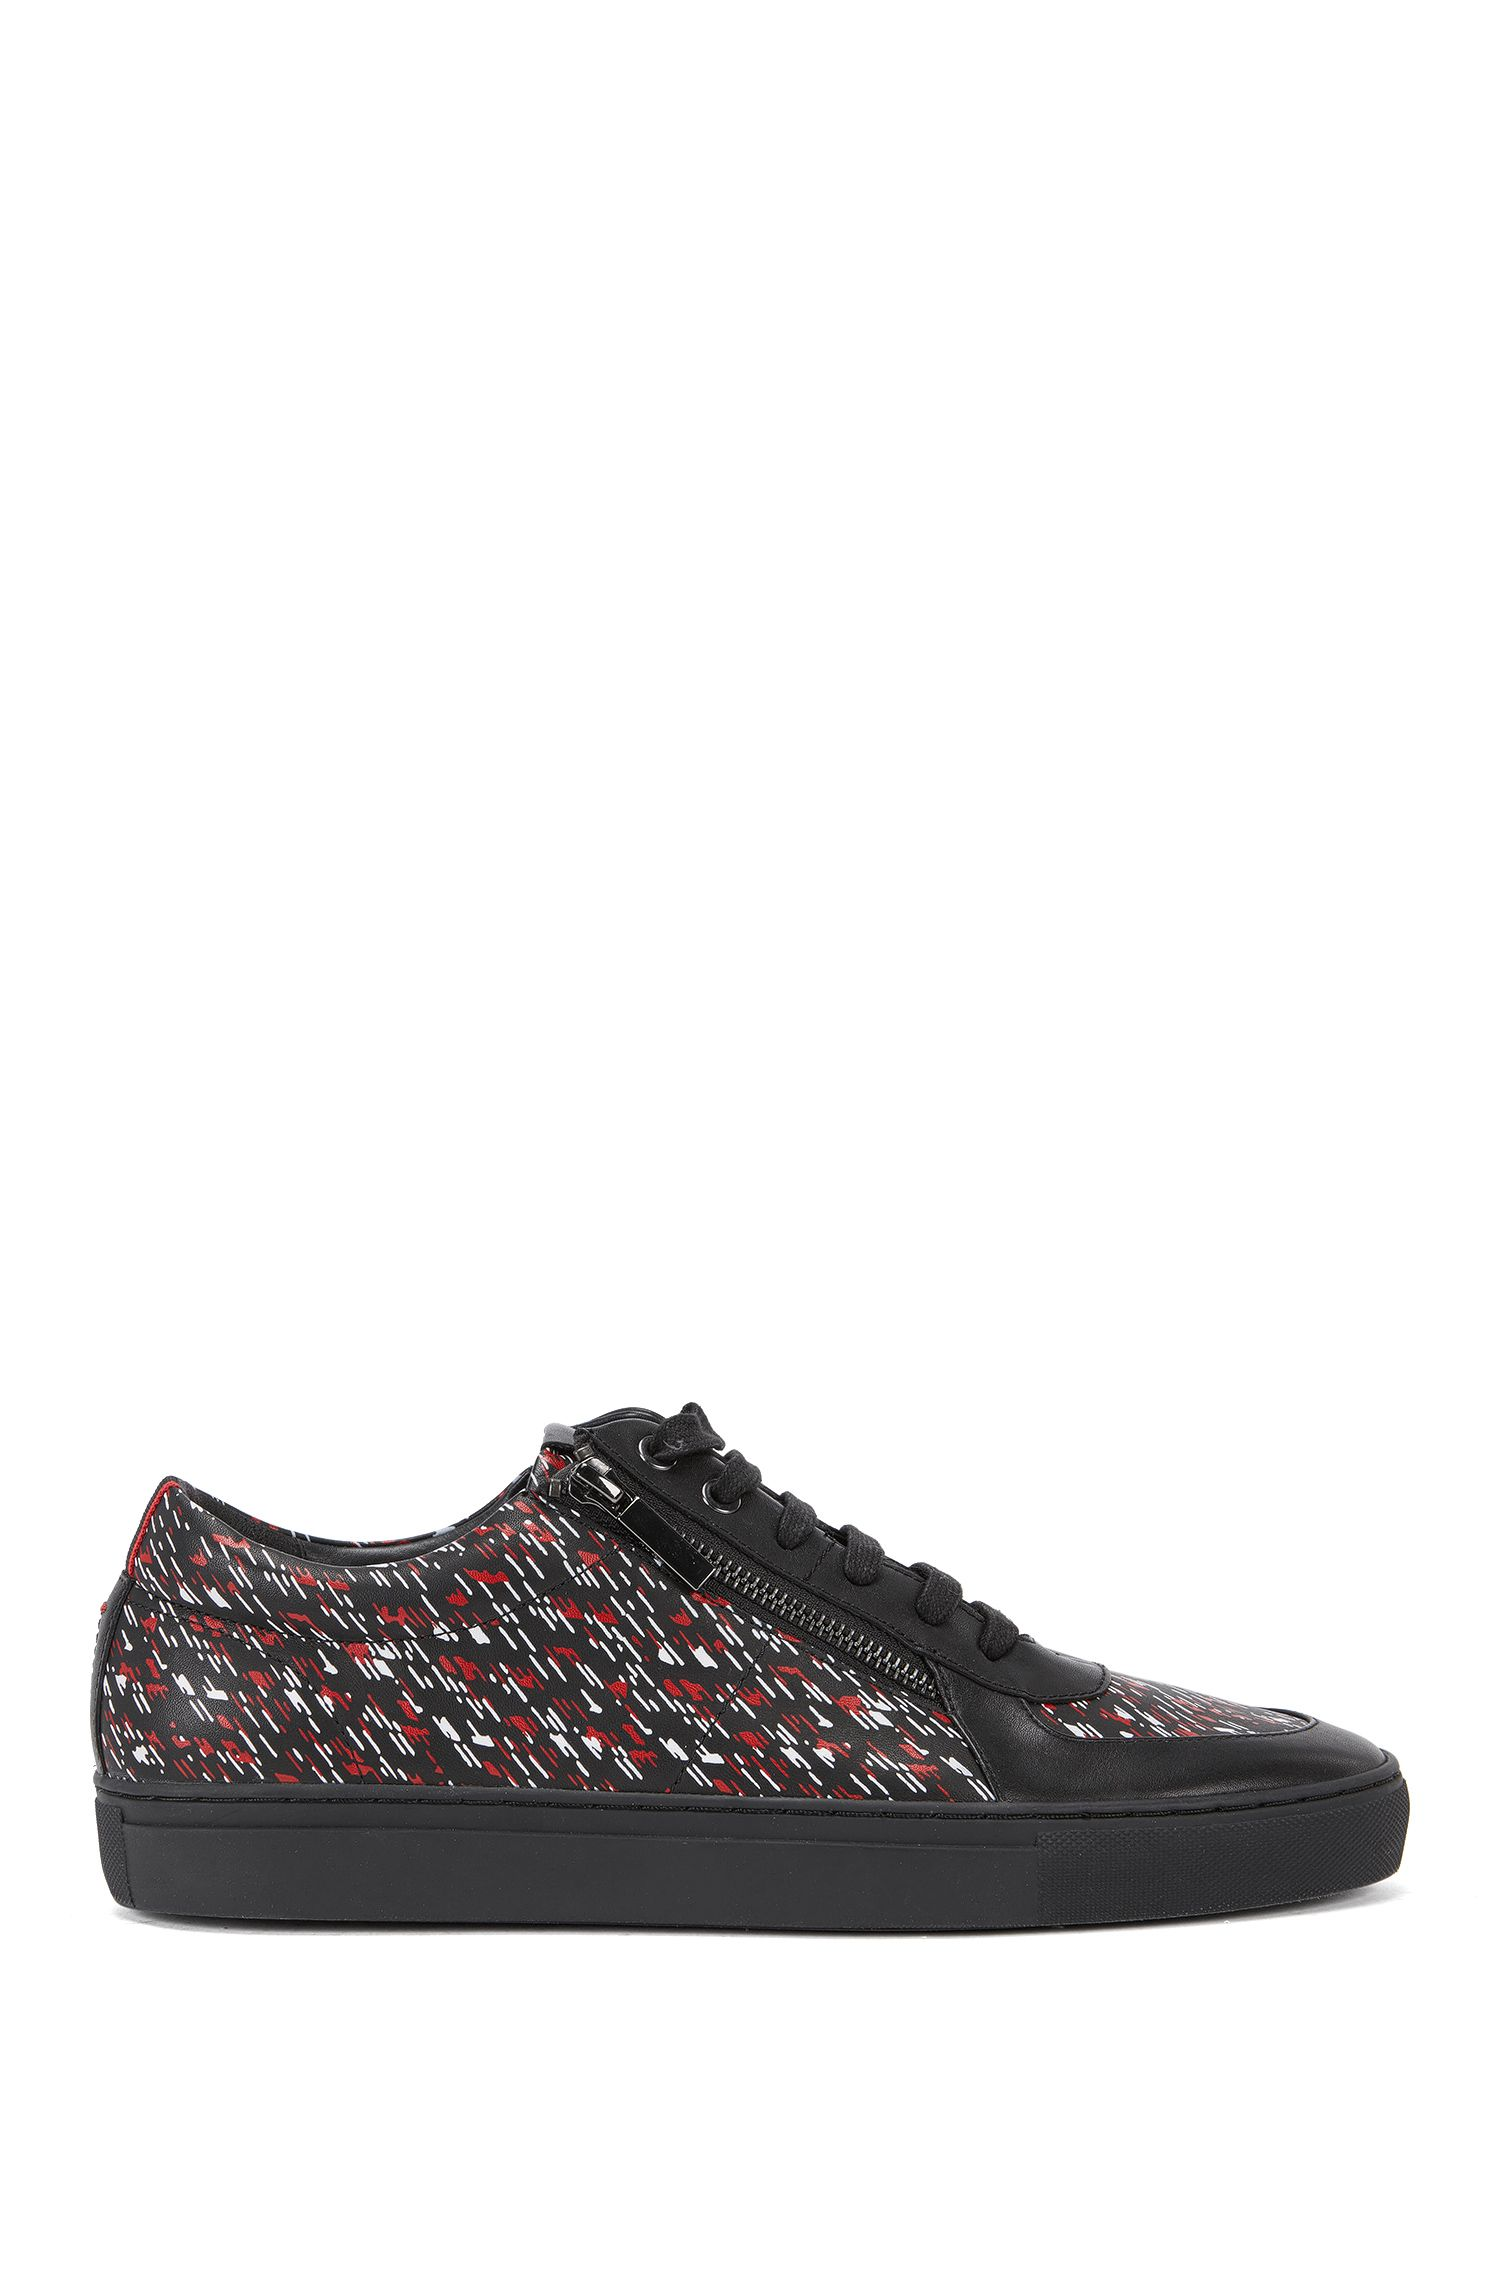 Low-top trainers in printed leather